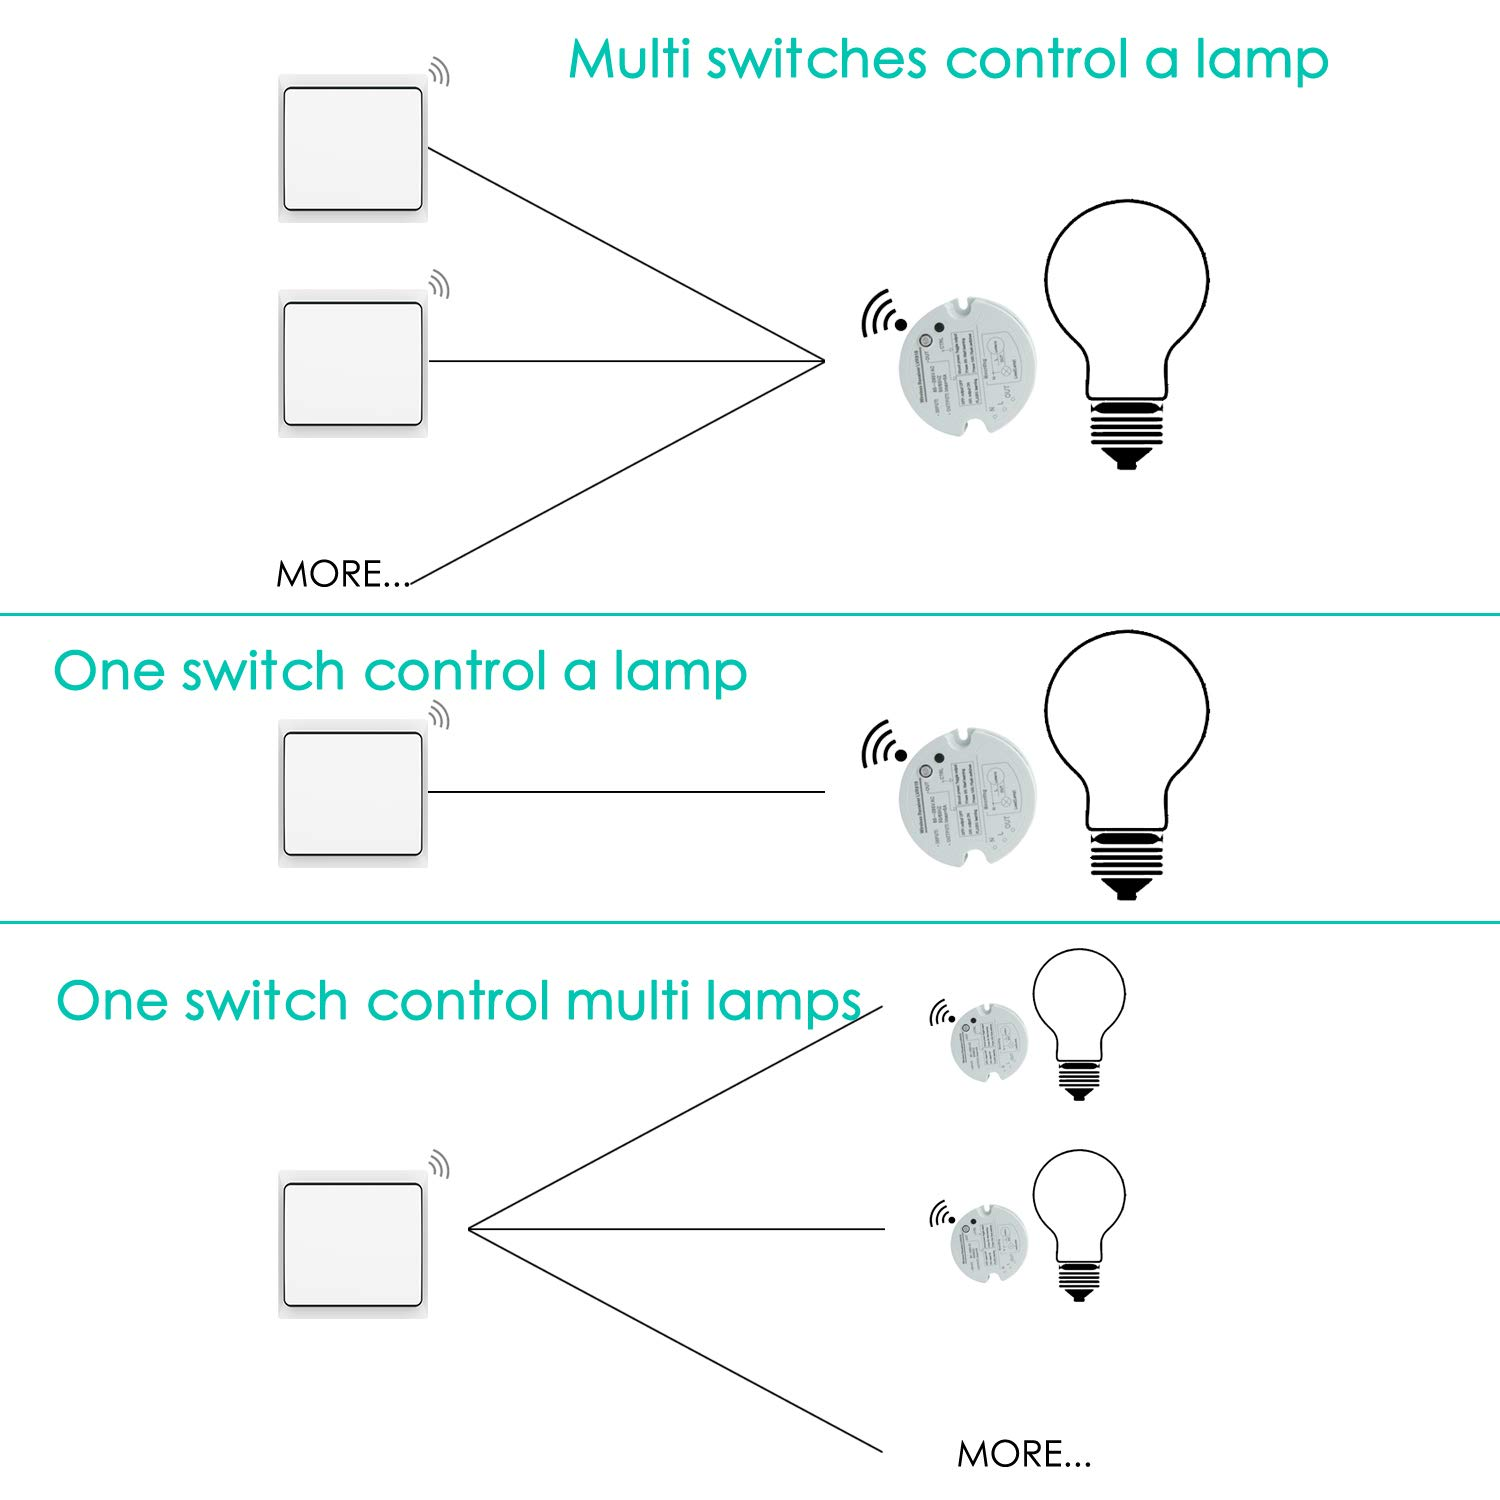 Crelander Wireless Light Switch Kit No Wiring Battery Required Kitchen Lights Single Diagram Rf Remote Receiver 100 260 Feet Range For House Lightning And Appliancesswitch